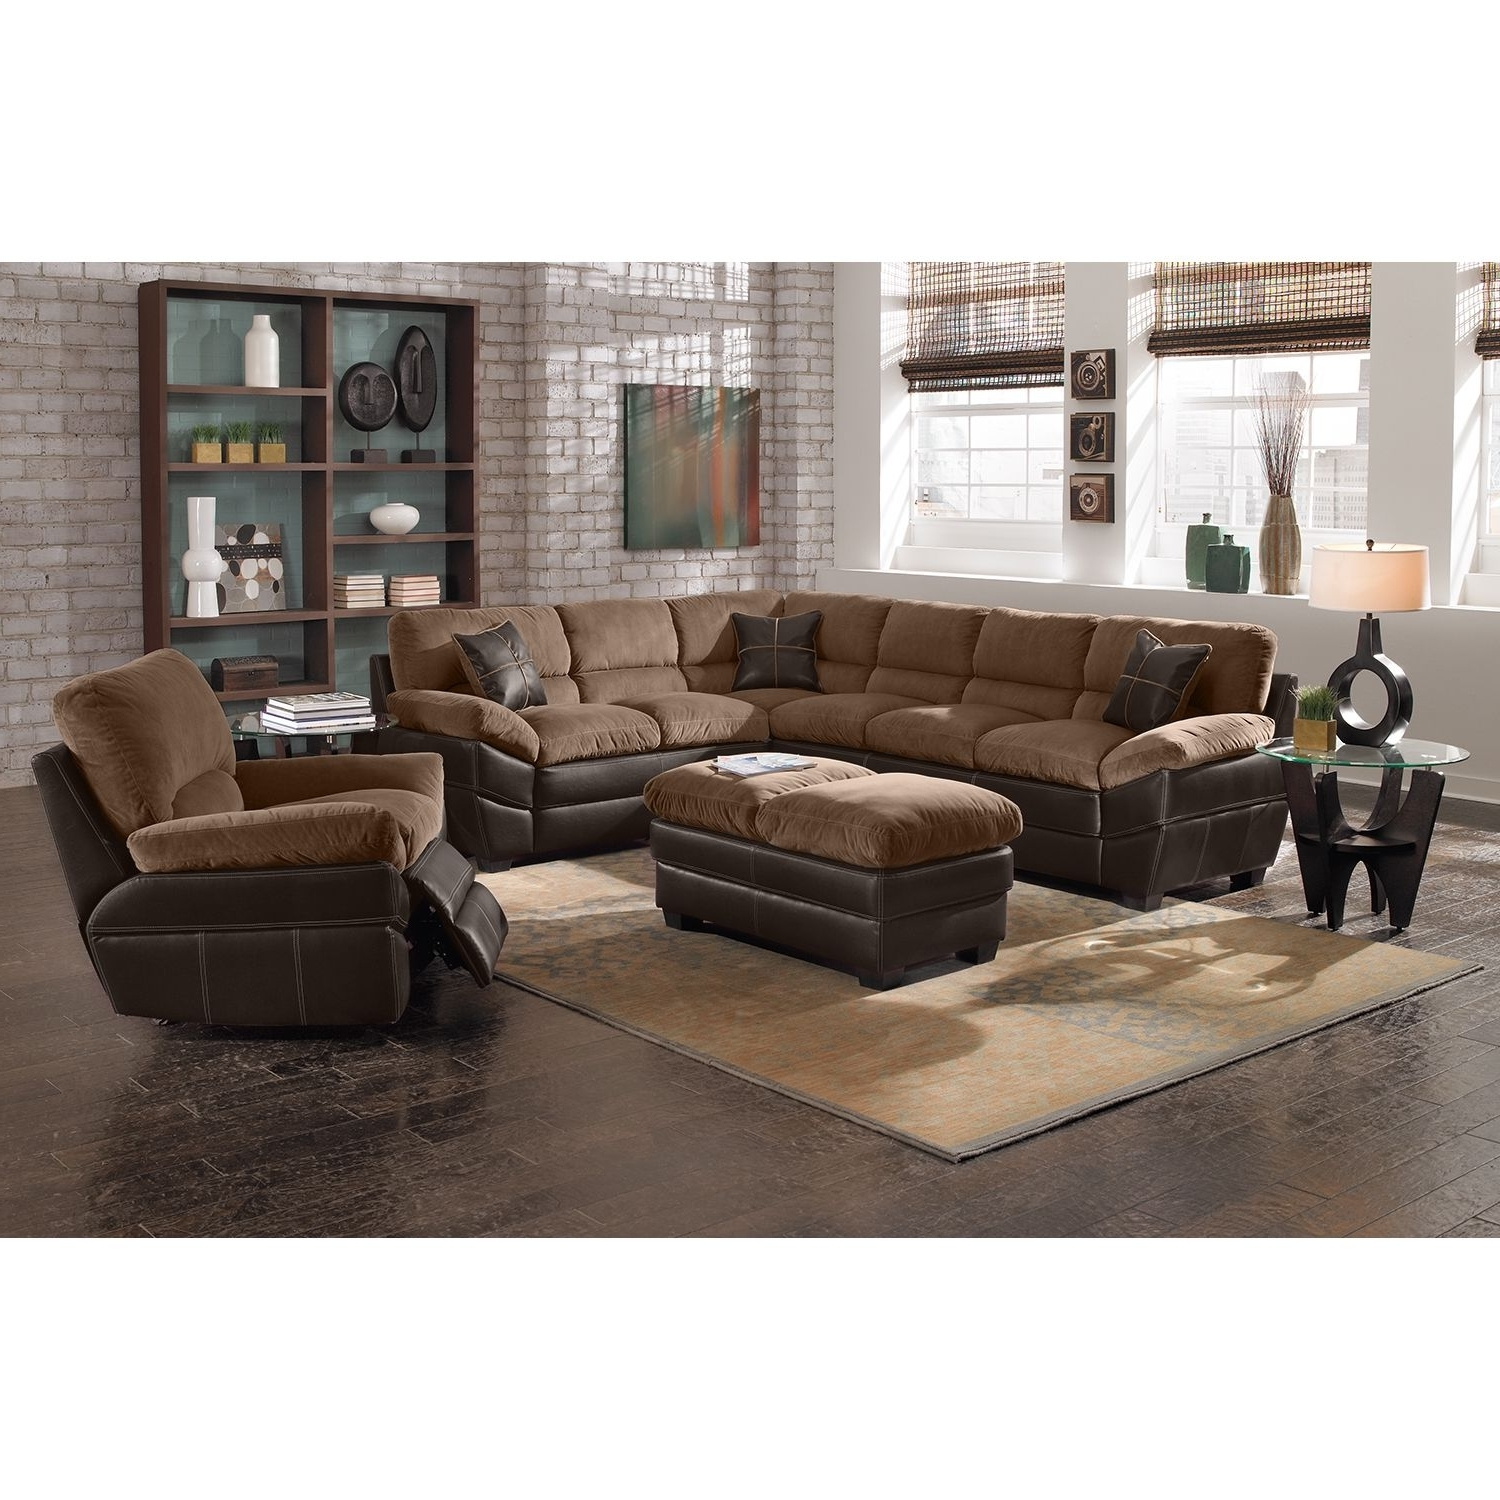 Well Known Value City Sectional Sofas Regarding Chandler Upholstery 2 Pc (View 20 of 20)